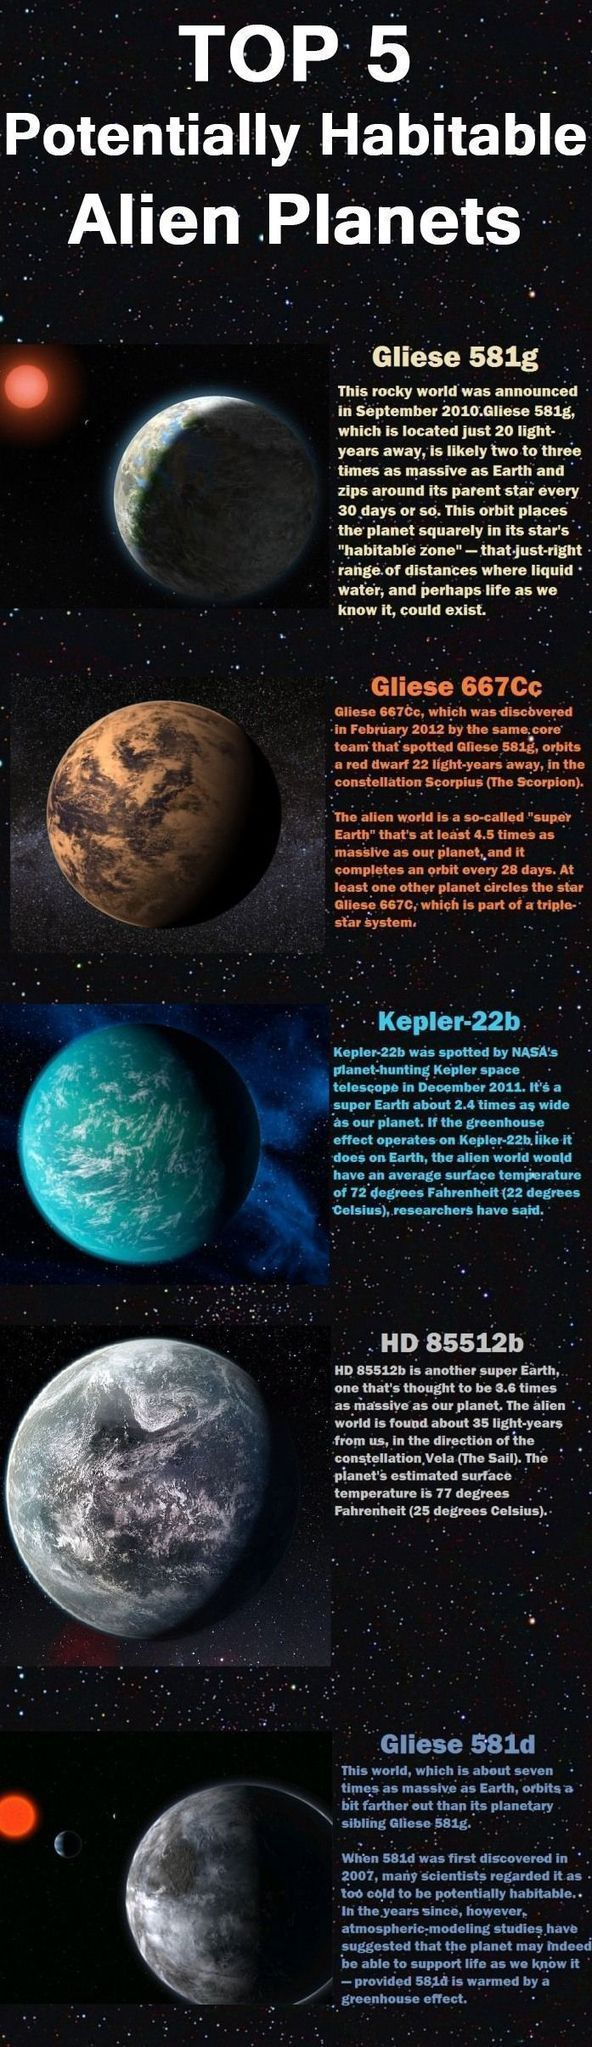 Gliese 581g: This rocky world was announced in September 2010. Gliese 581g, which is located just 20 light years away, is likely two to three times as massive as Earth and revolves around its parent star every 30+ days. This orbit places the planet squarely in the goldilock zone - that is the ran...